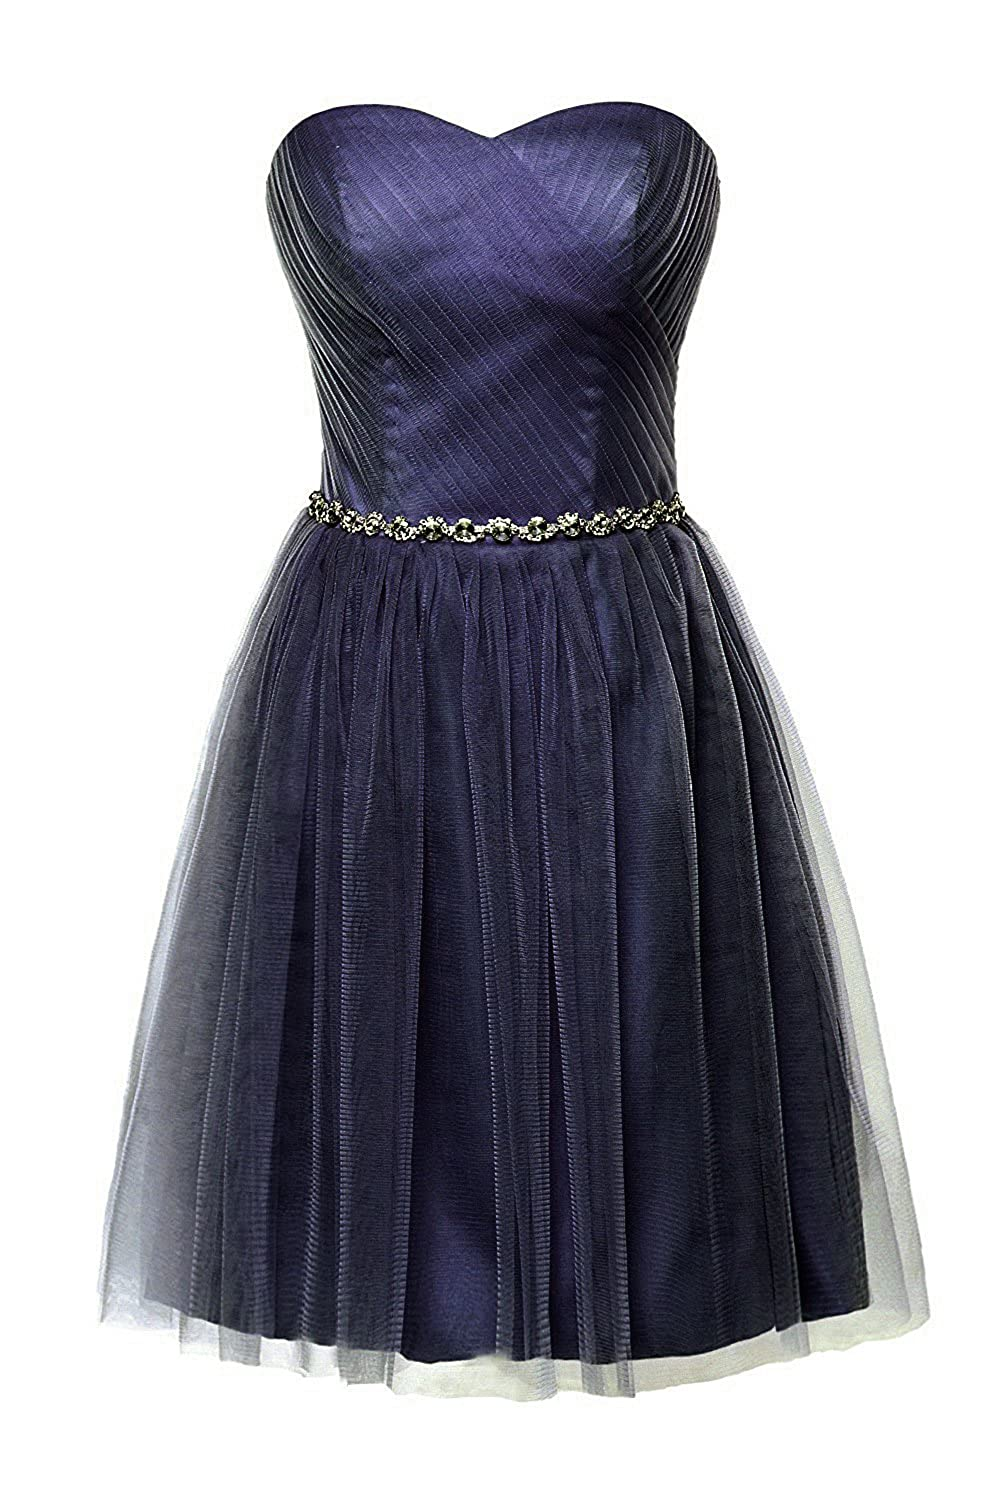 Navy Victoria Prom Women Short Bridesmaid Dress for Junior Sweetheart Beads Girls Party